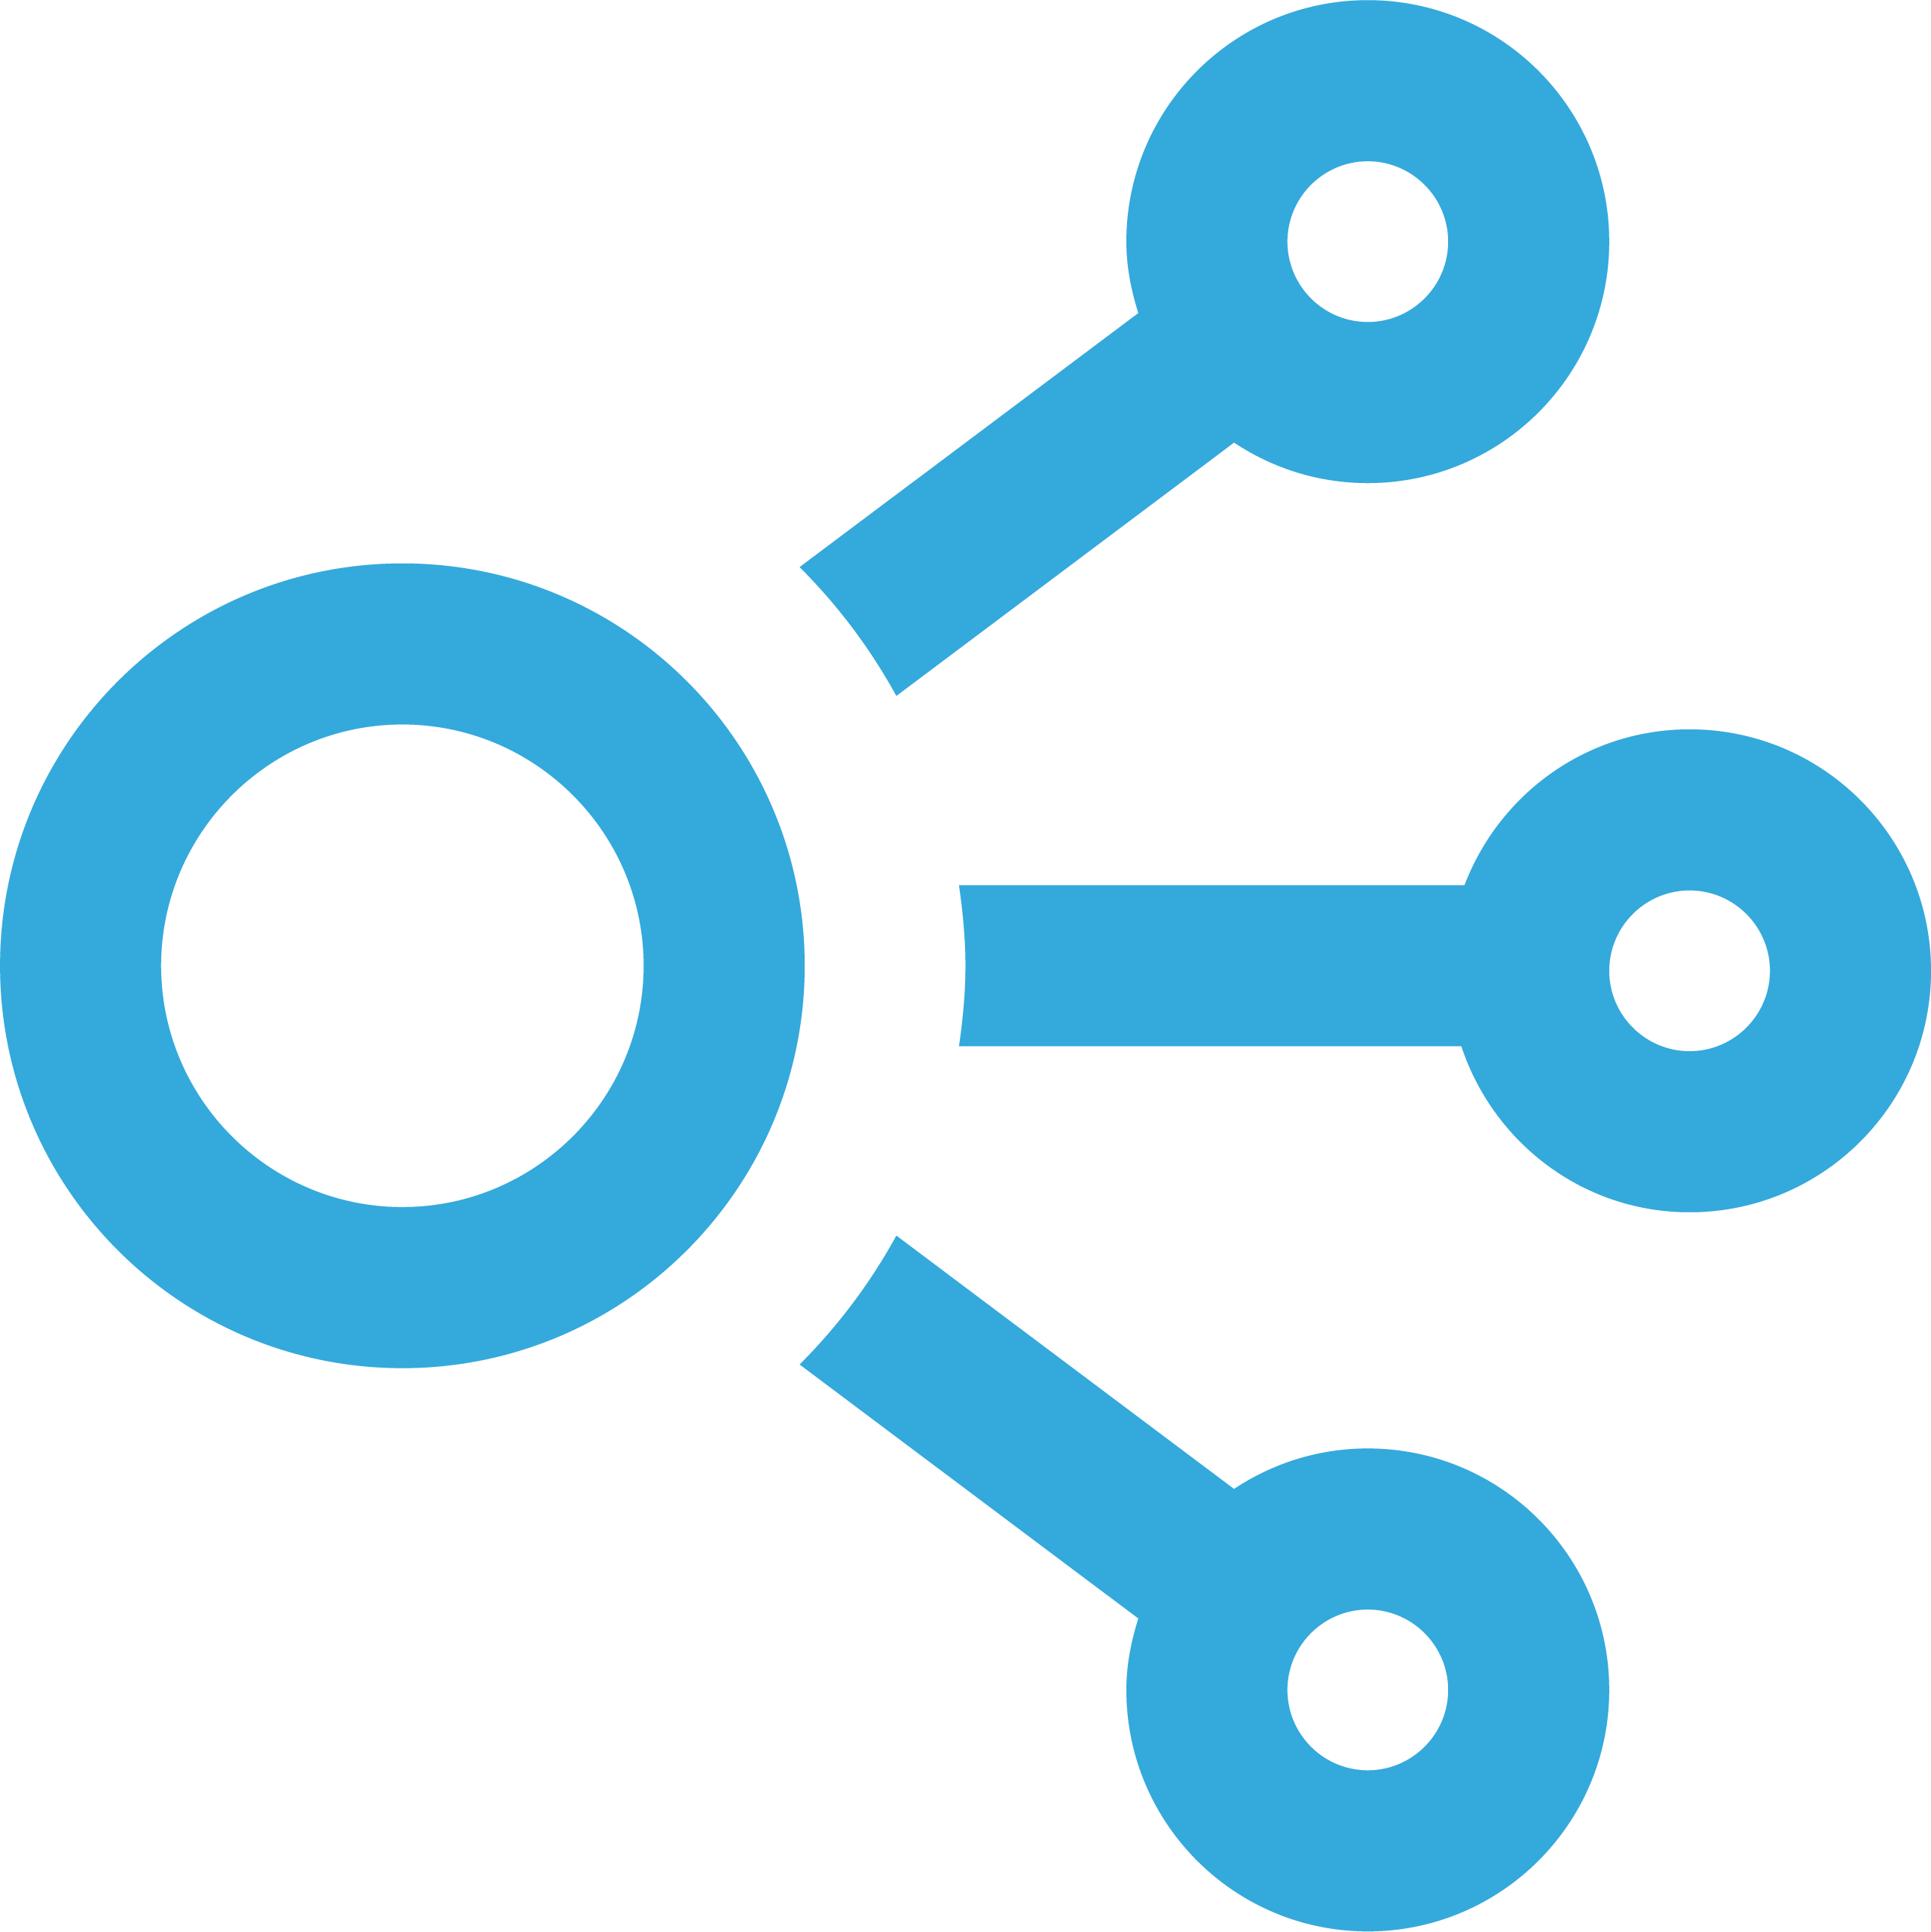 icon to represent connection. Shows a large circle connected to three smaller circles.